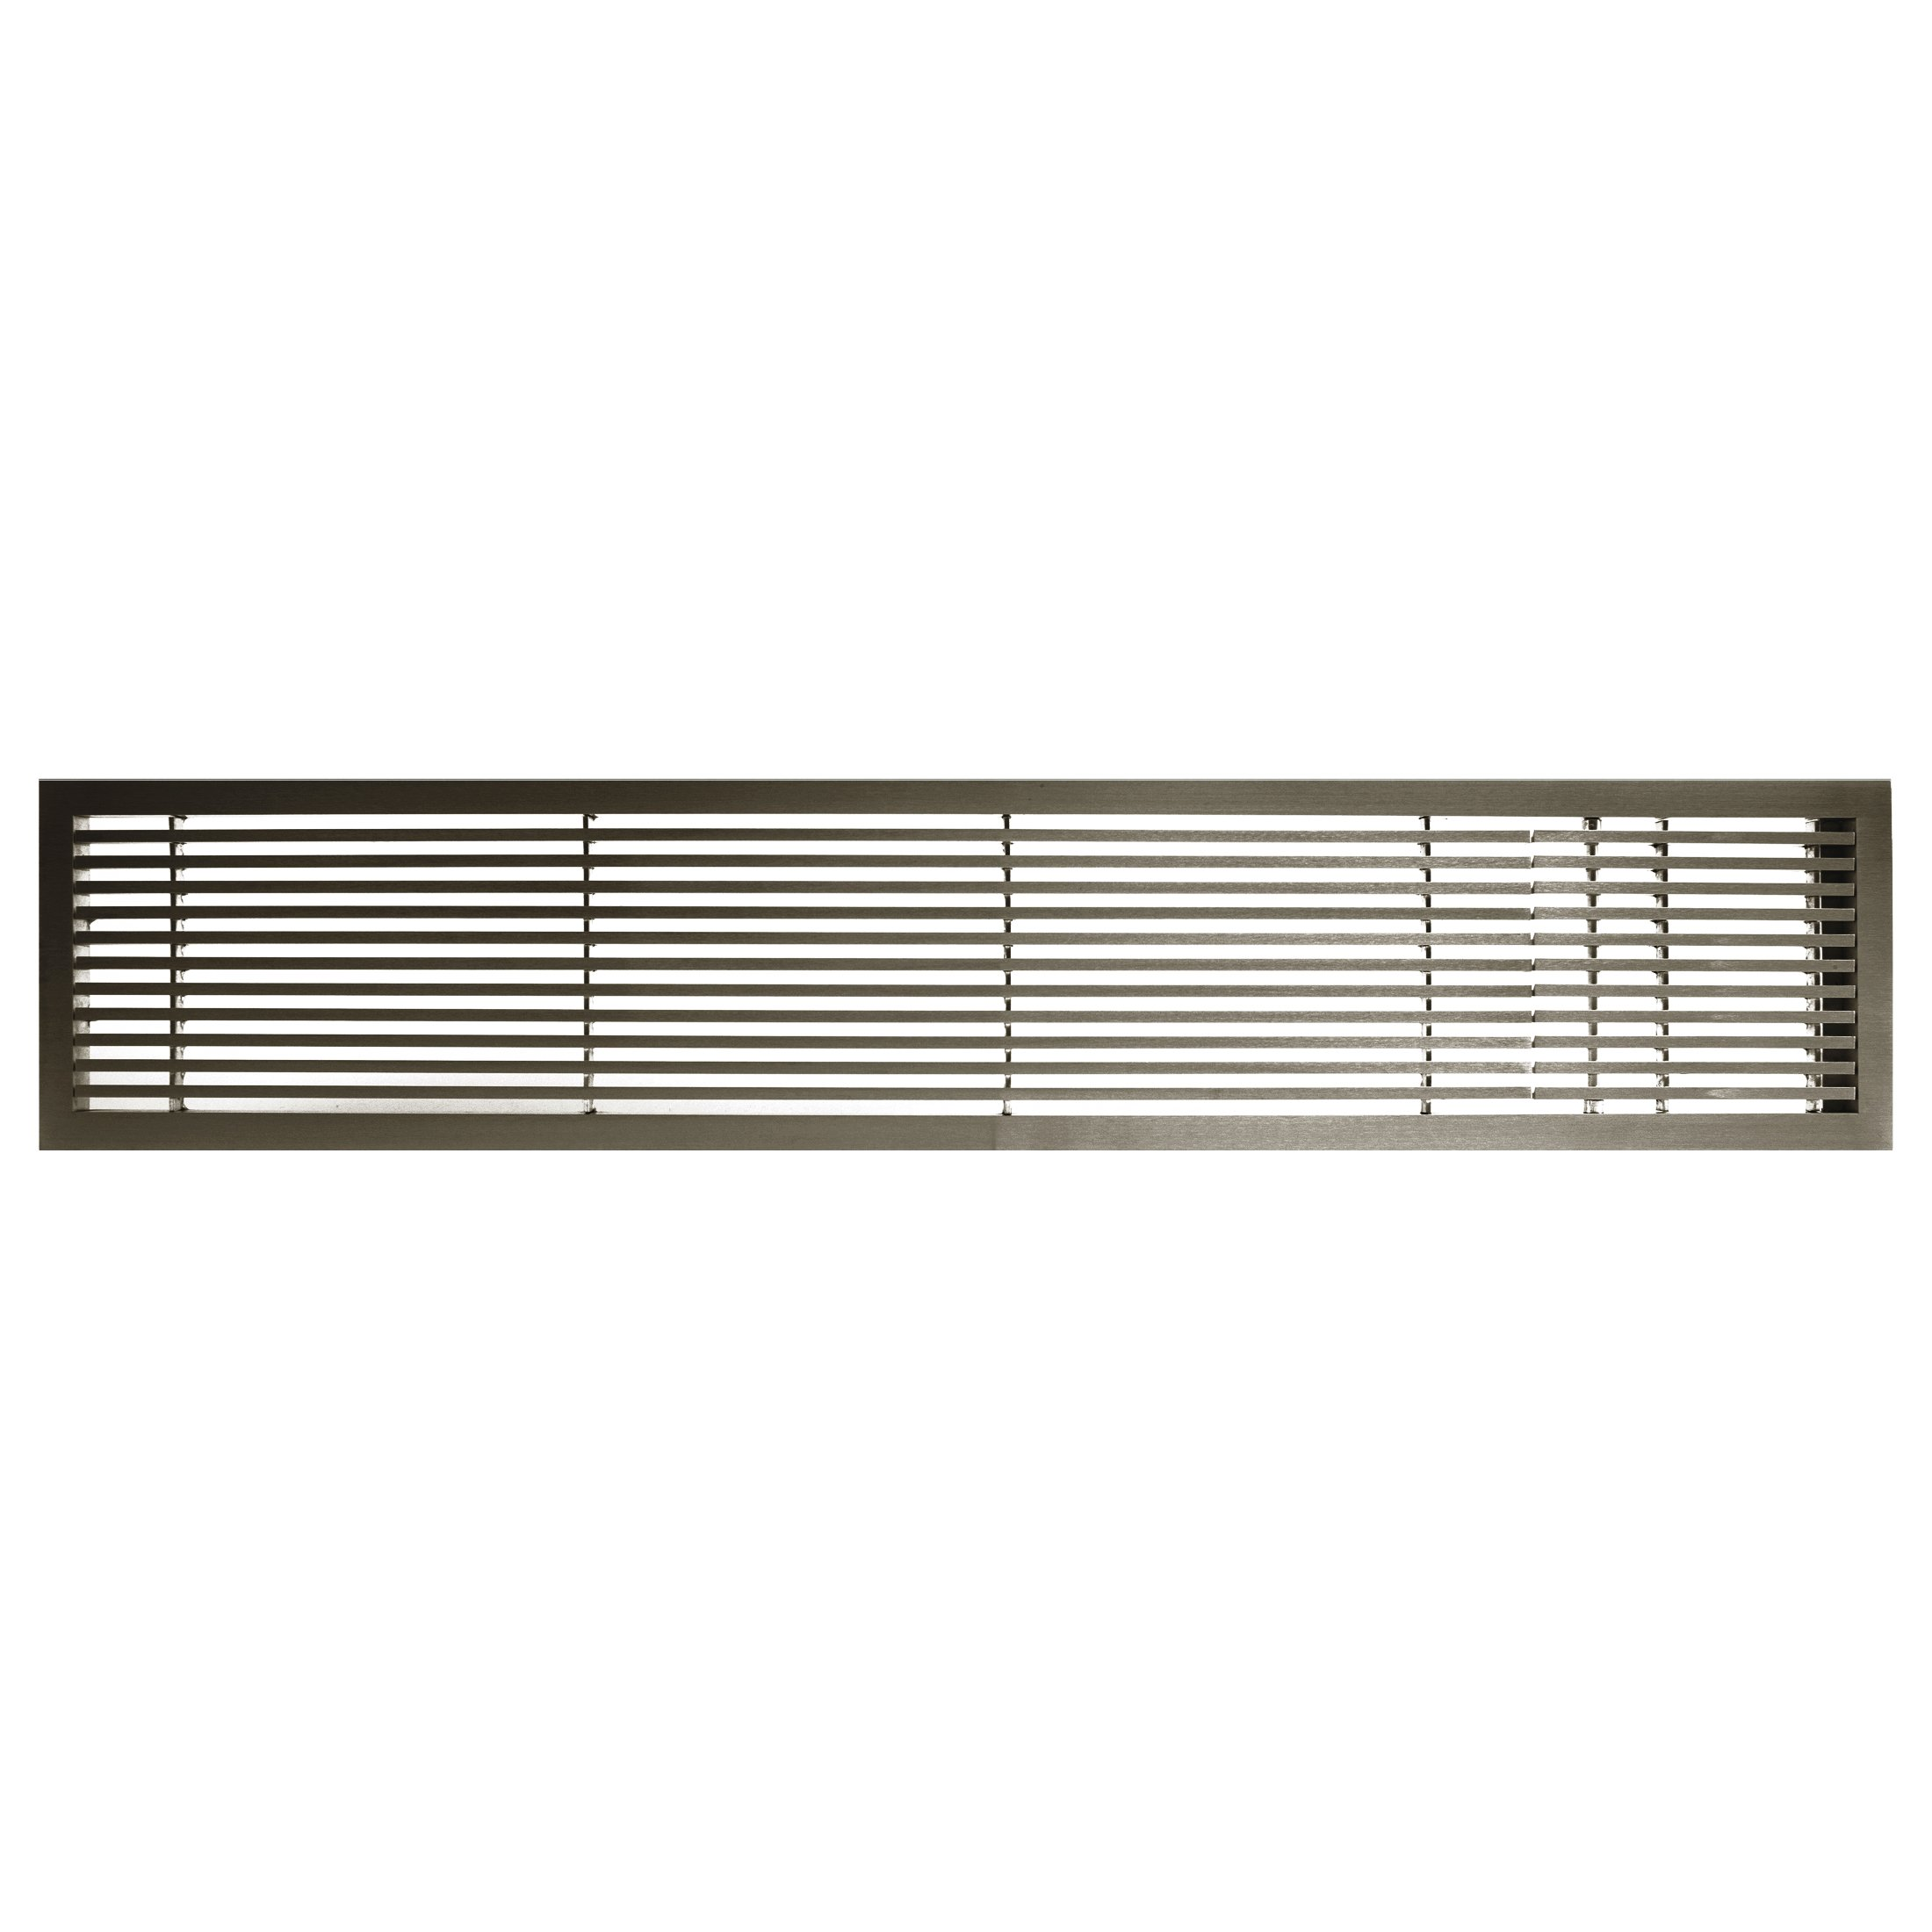 Architectural Grille 200042426 AG20 Series 4'' x 24'' Solid Aluminum Fixed Bar Supply/Return Air Vent Grille, Antique Bronze Finish with Right Door by Architectural Grille